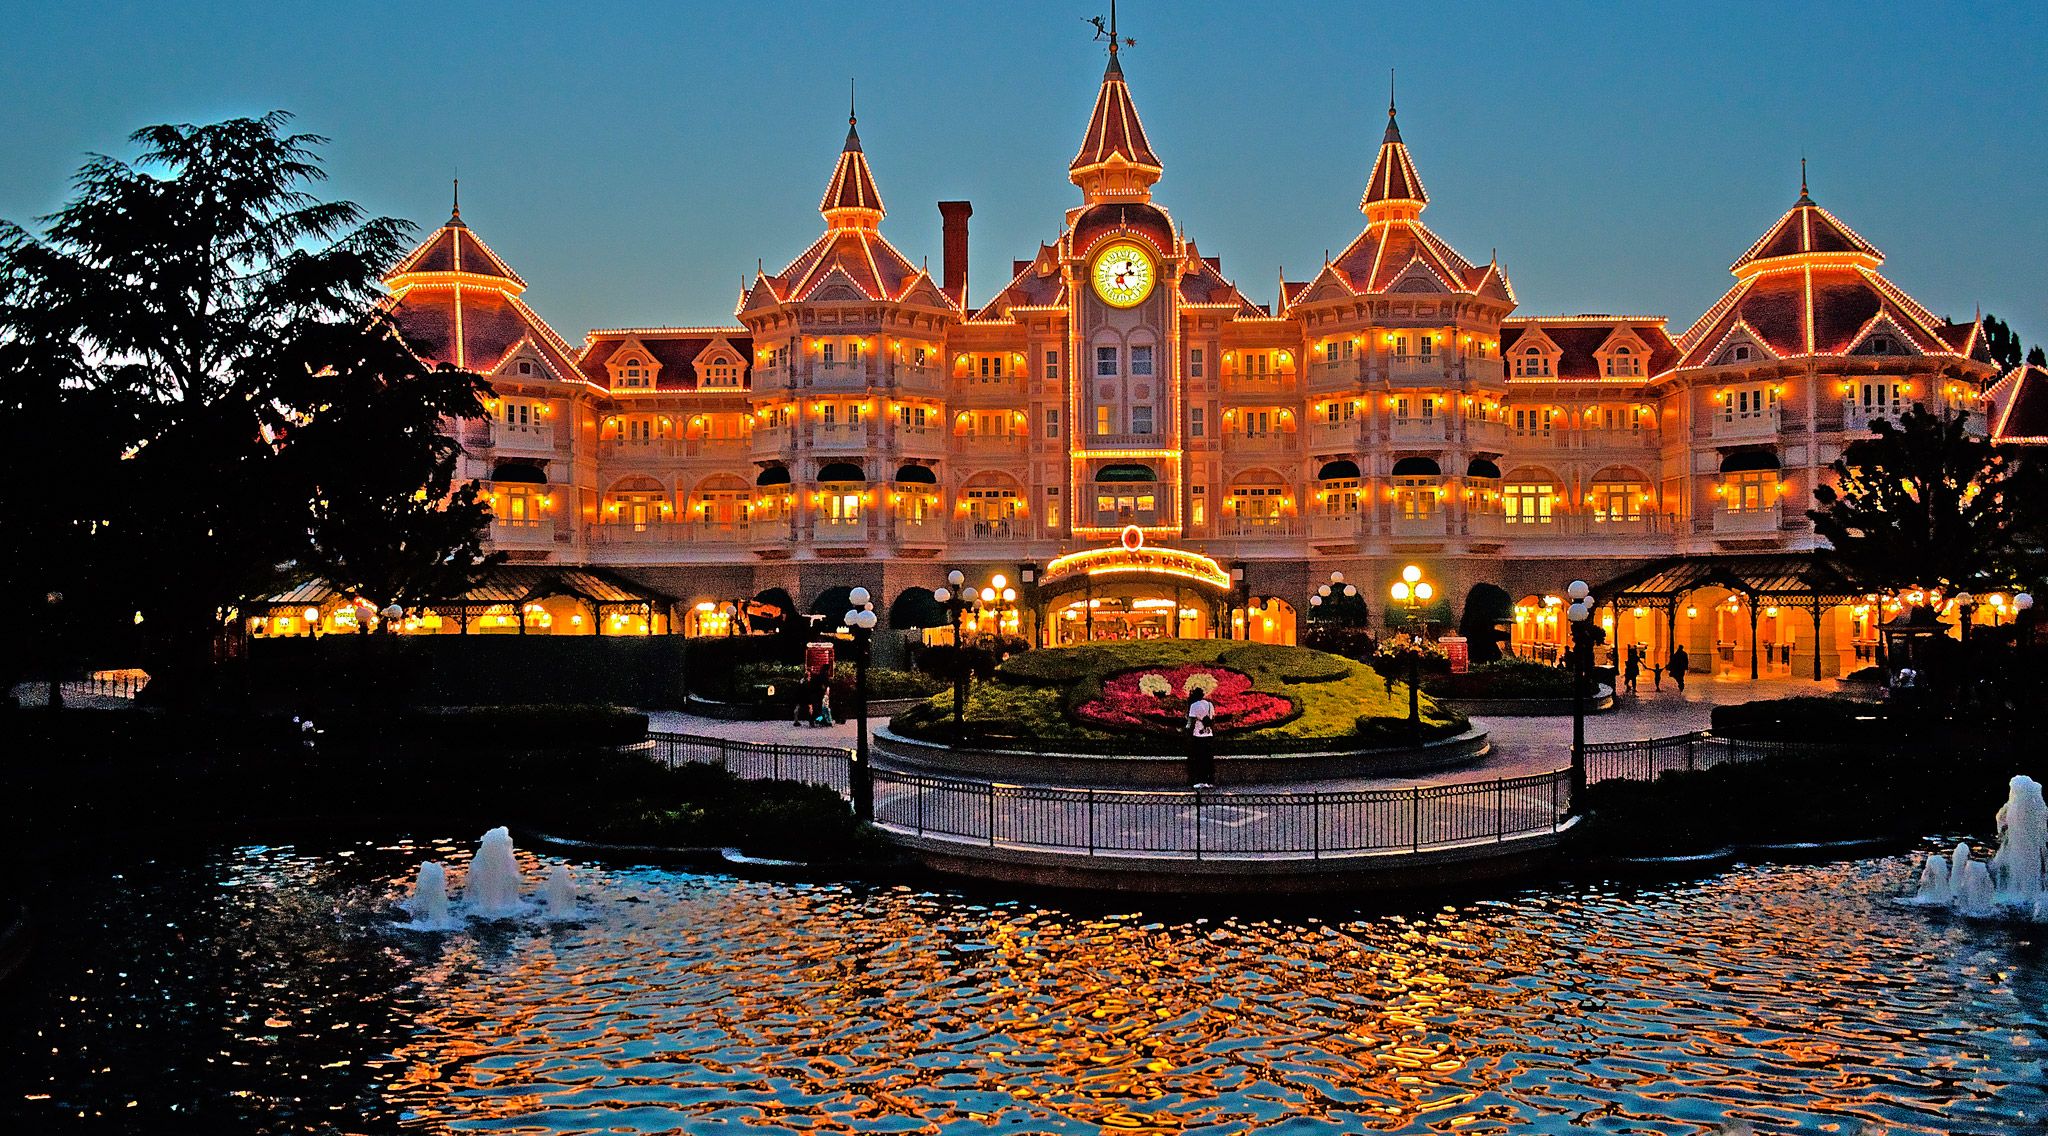 Hotel du parc disneyland paris for Hotels eurodisney